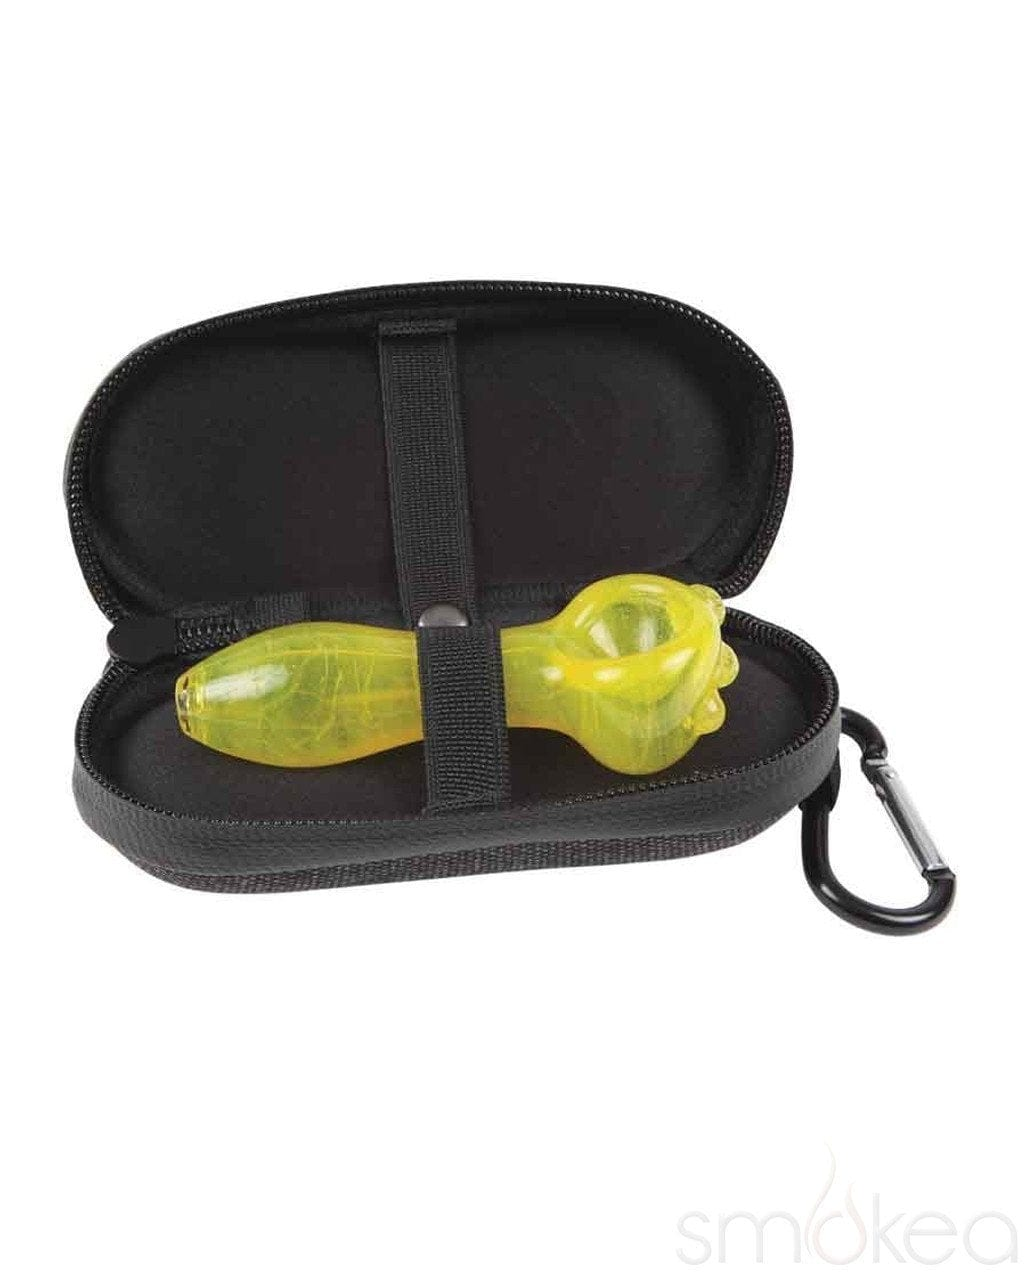 RYOT Small SmellSafe HardCase Pipe Case - SMOKEA®